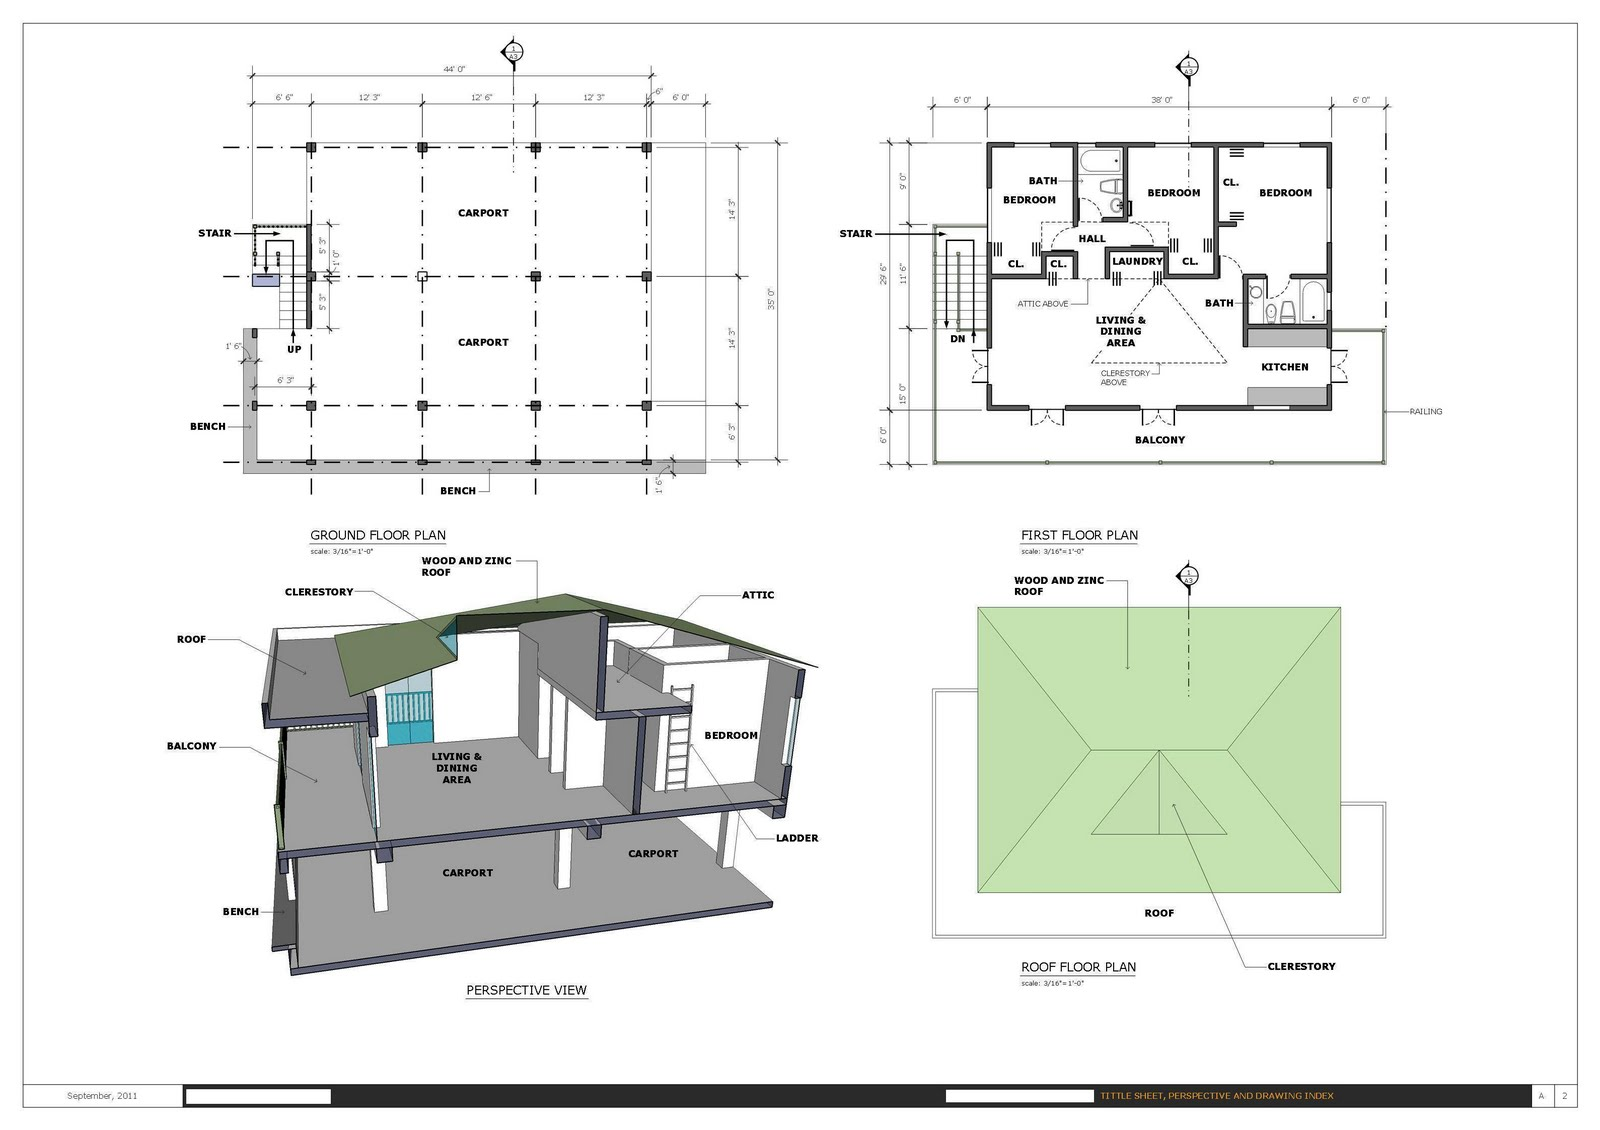 Juan H Santiago Sketchup Layout Work Flow